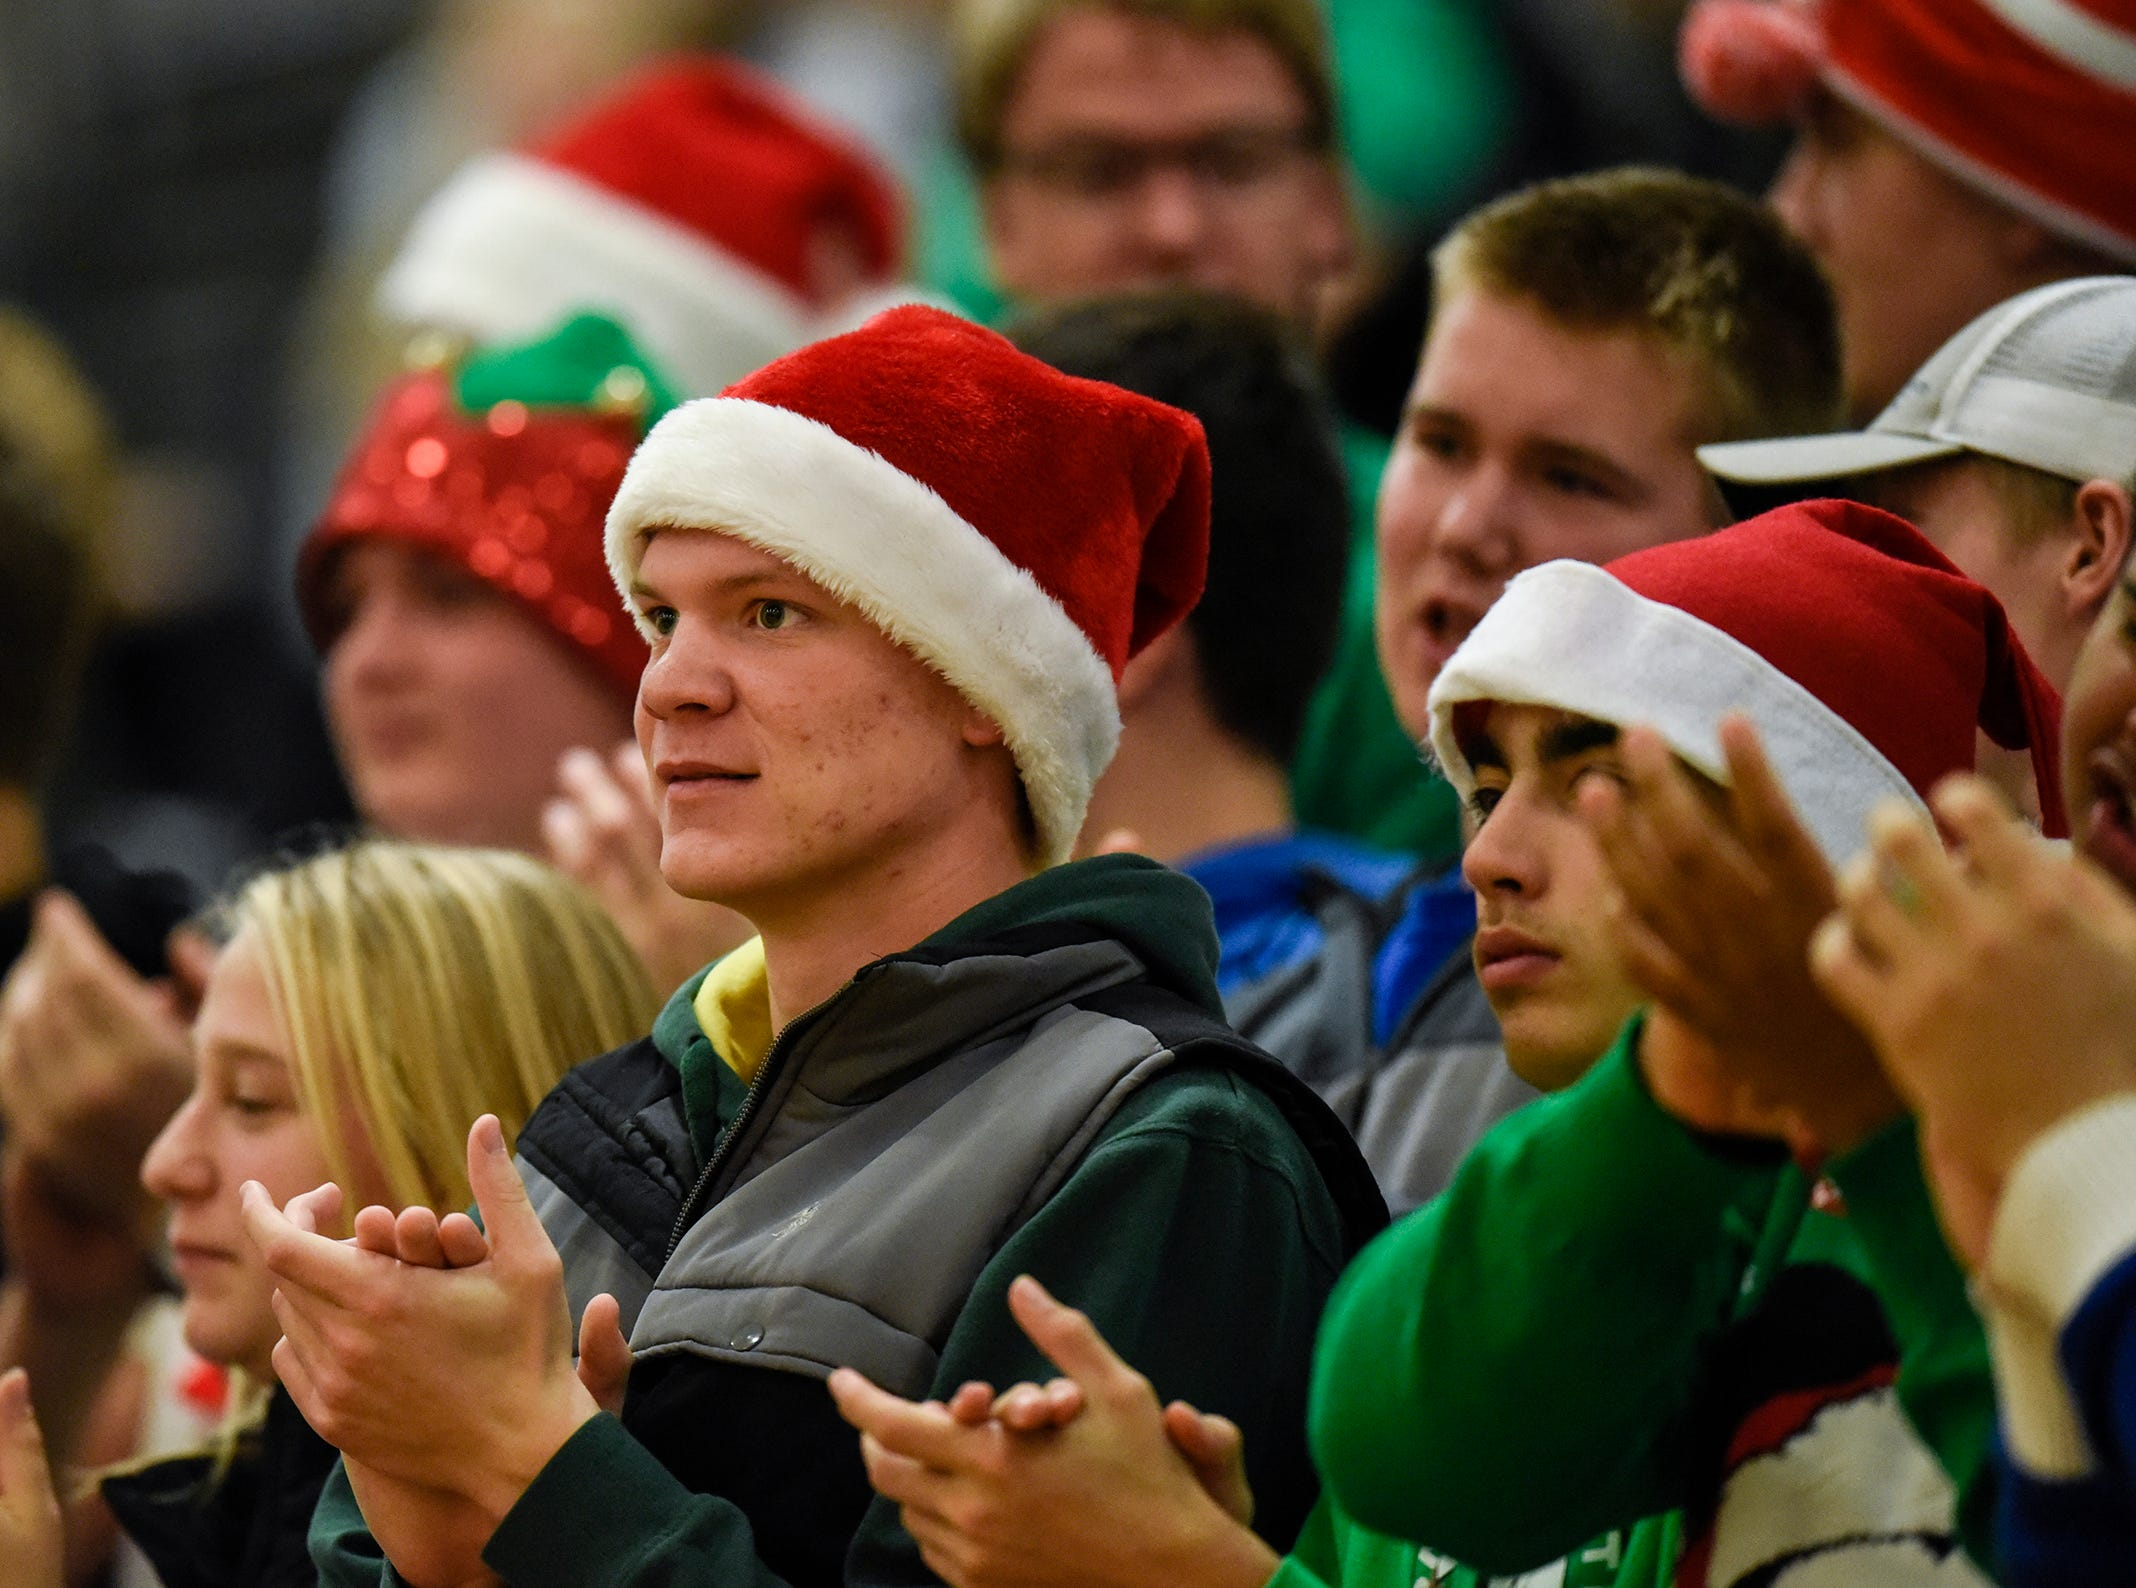 Foley fans wear their Christmas finest during the Section 6-2A volleyball semifinals Thursday, Nov. 1, at Sauk Rapids-Rice High School.